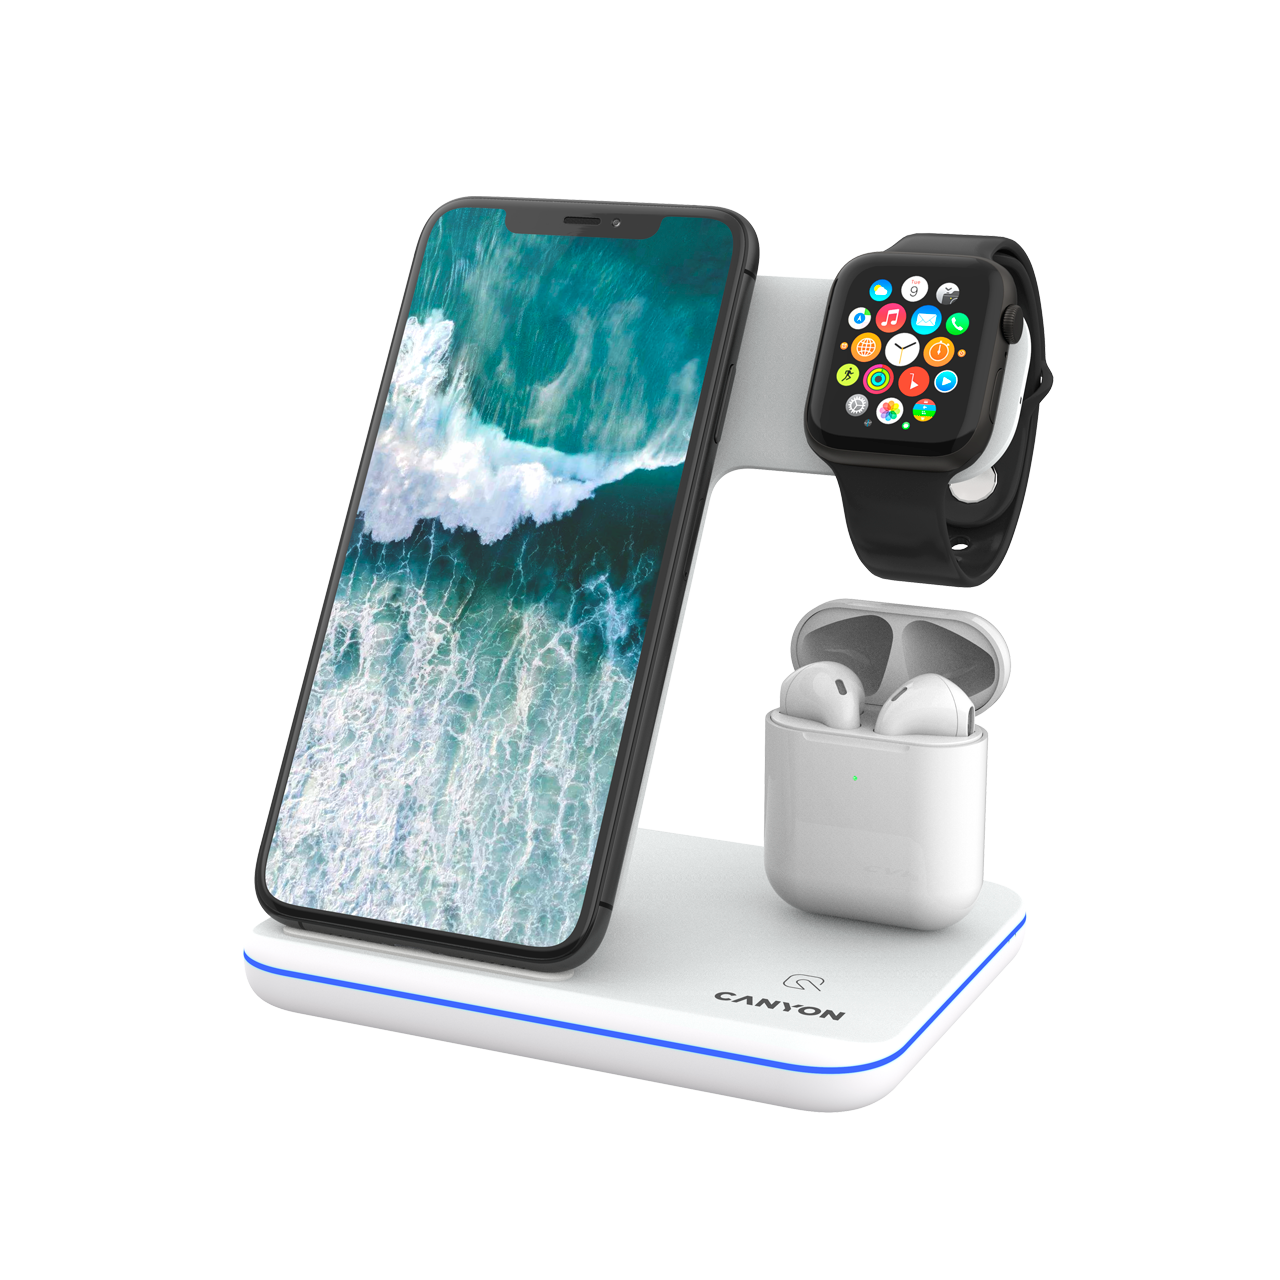 Canyon 3-in-1 Wireless charging